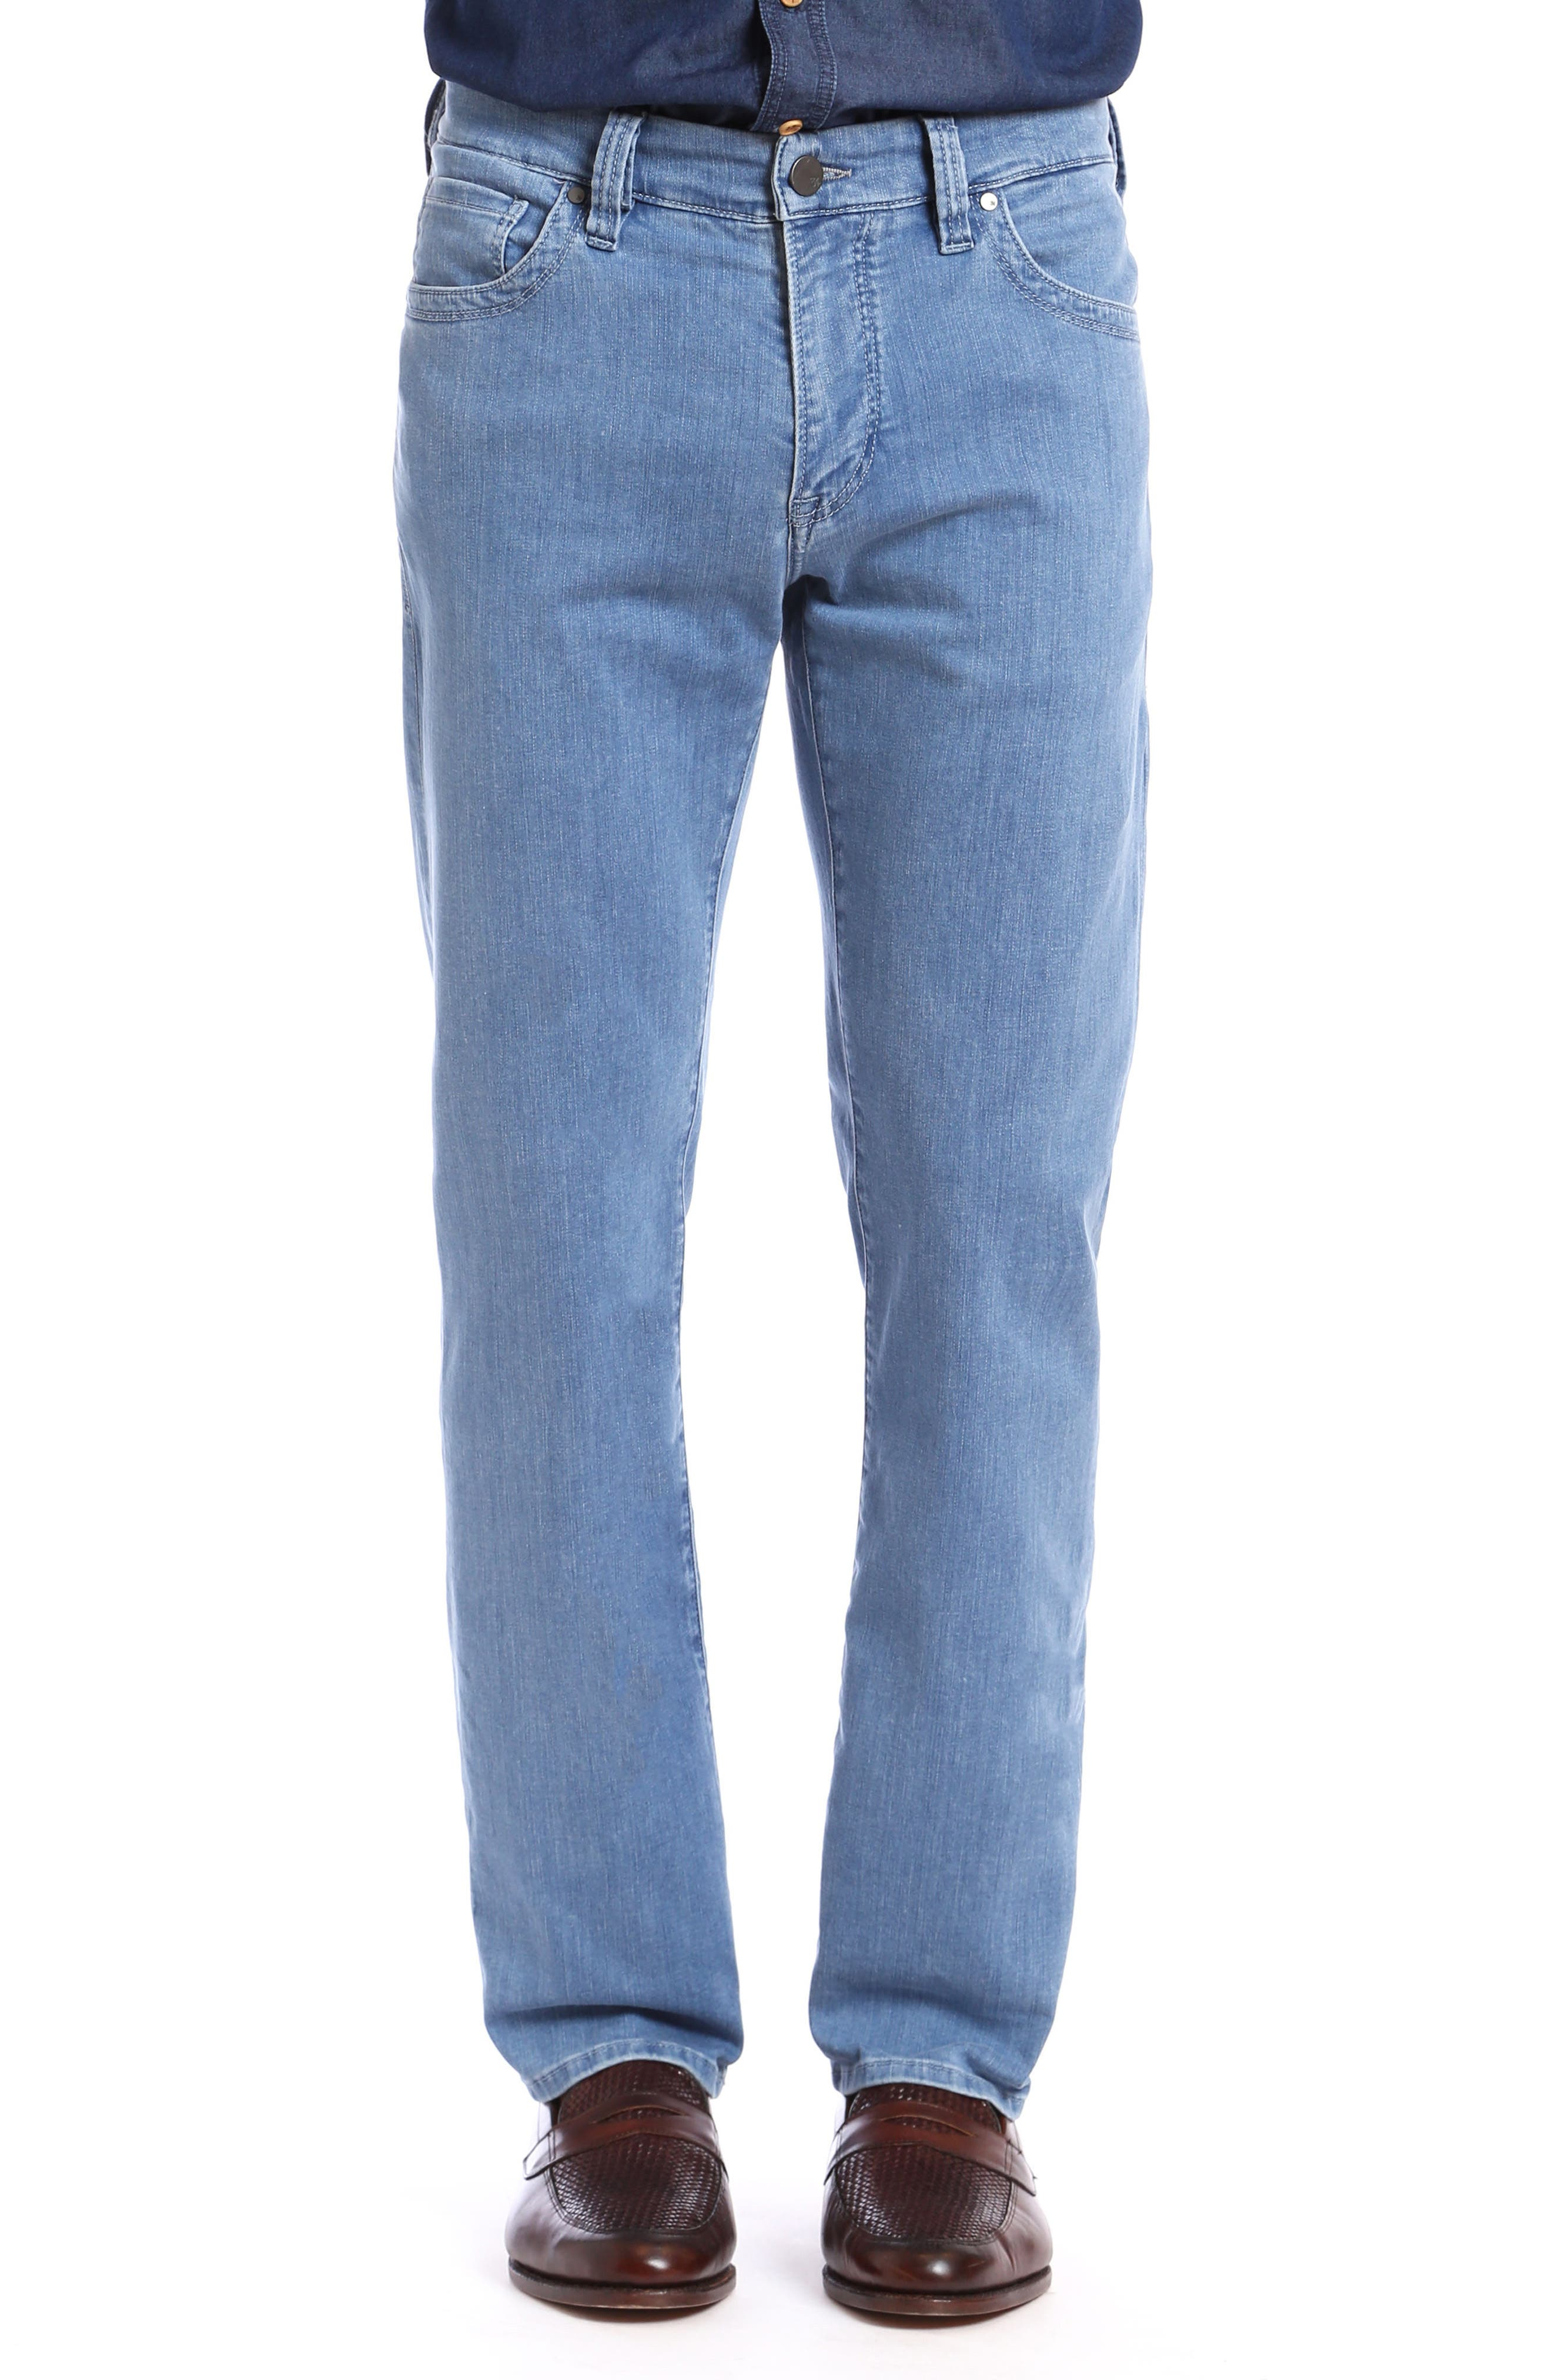 34 Heritage Charisma Relaxed Fit jeans (Light Milan)